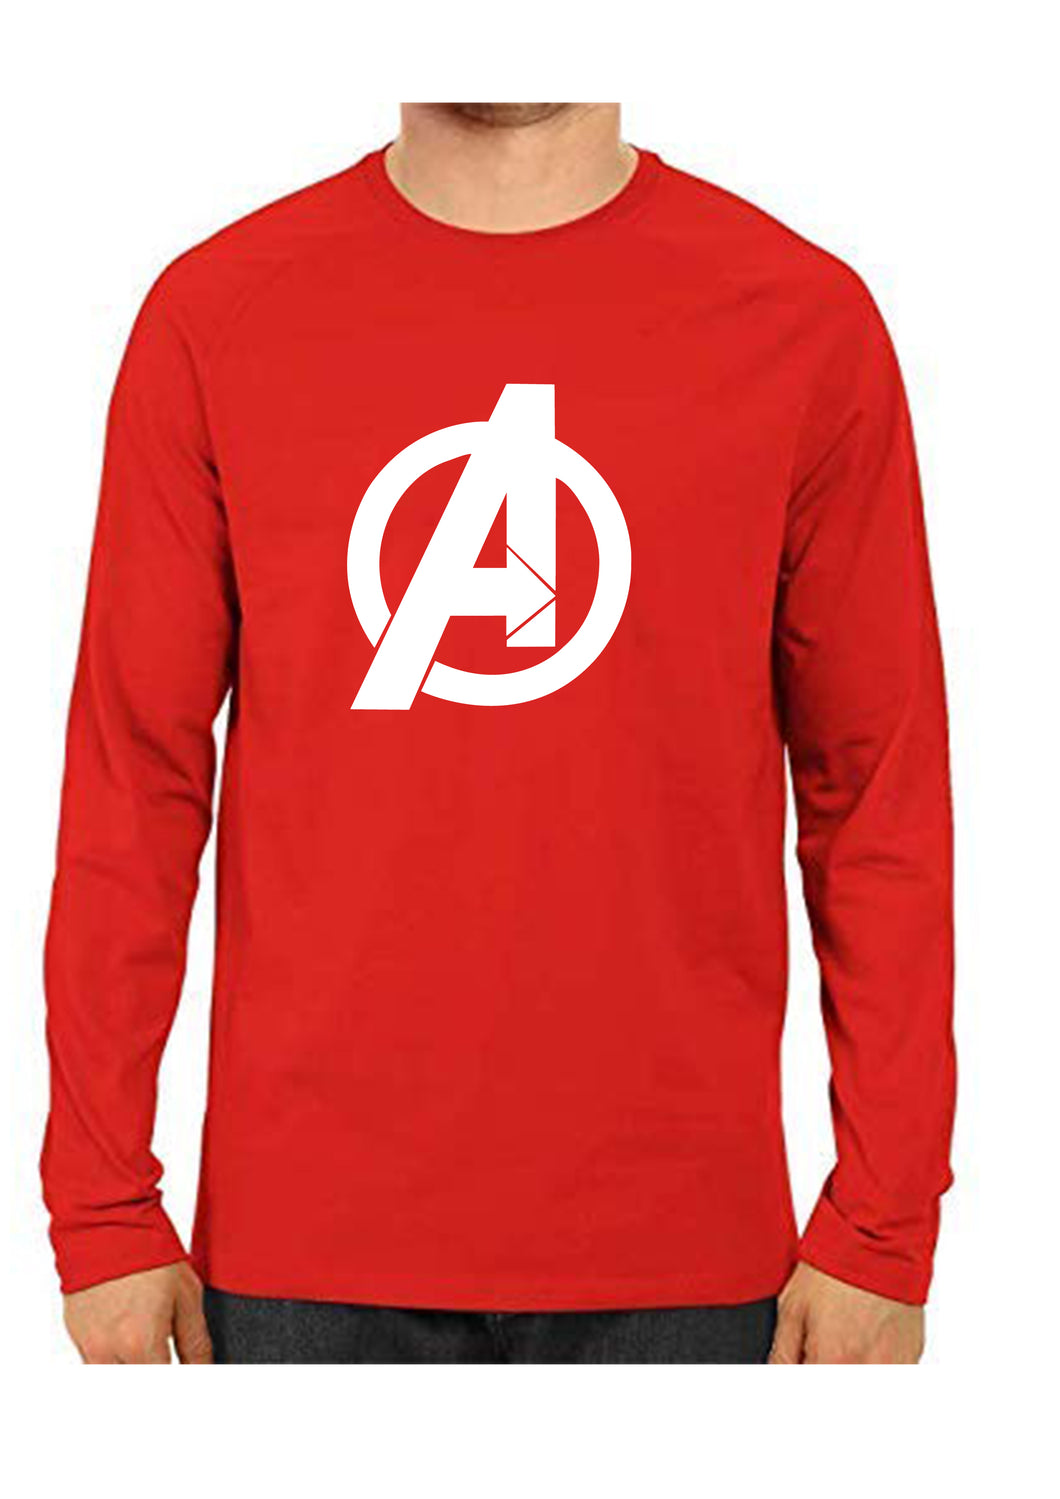 unisex Avenger red Full Sleeve Cotton Tshirts